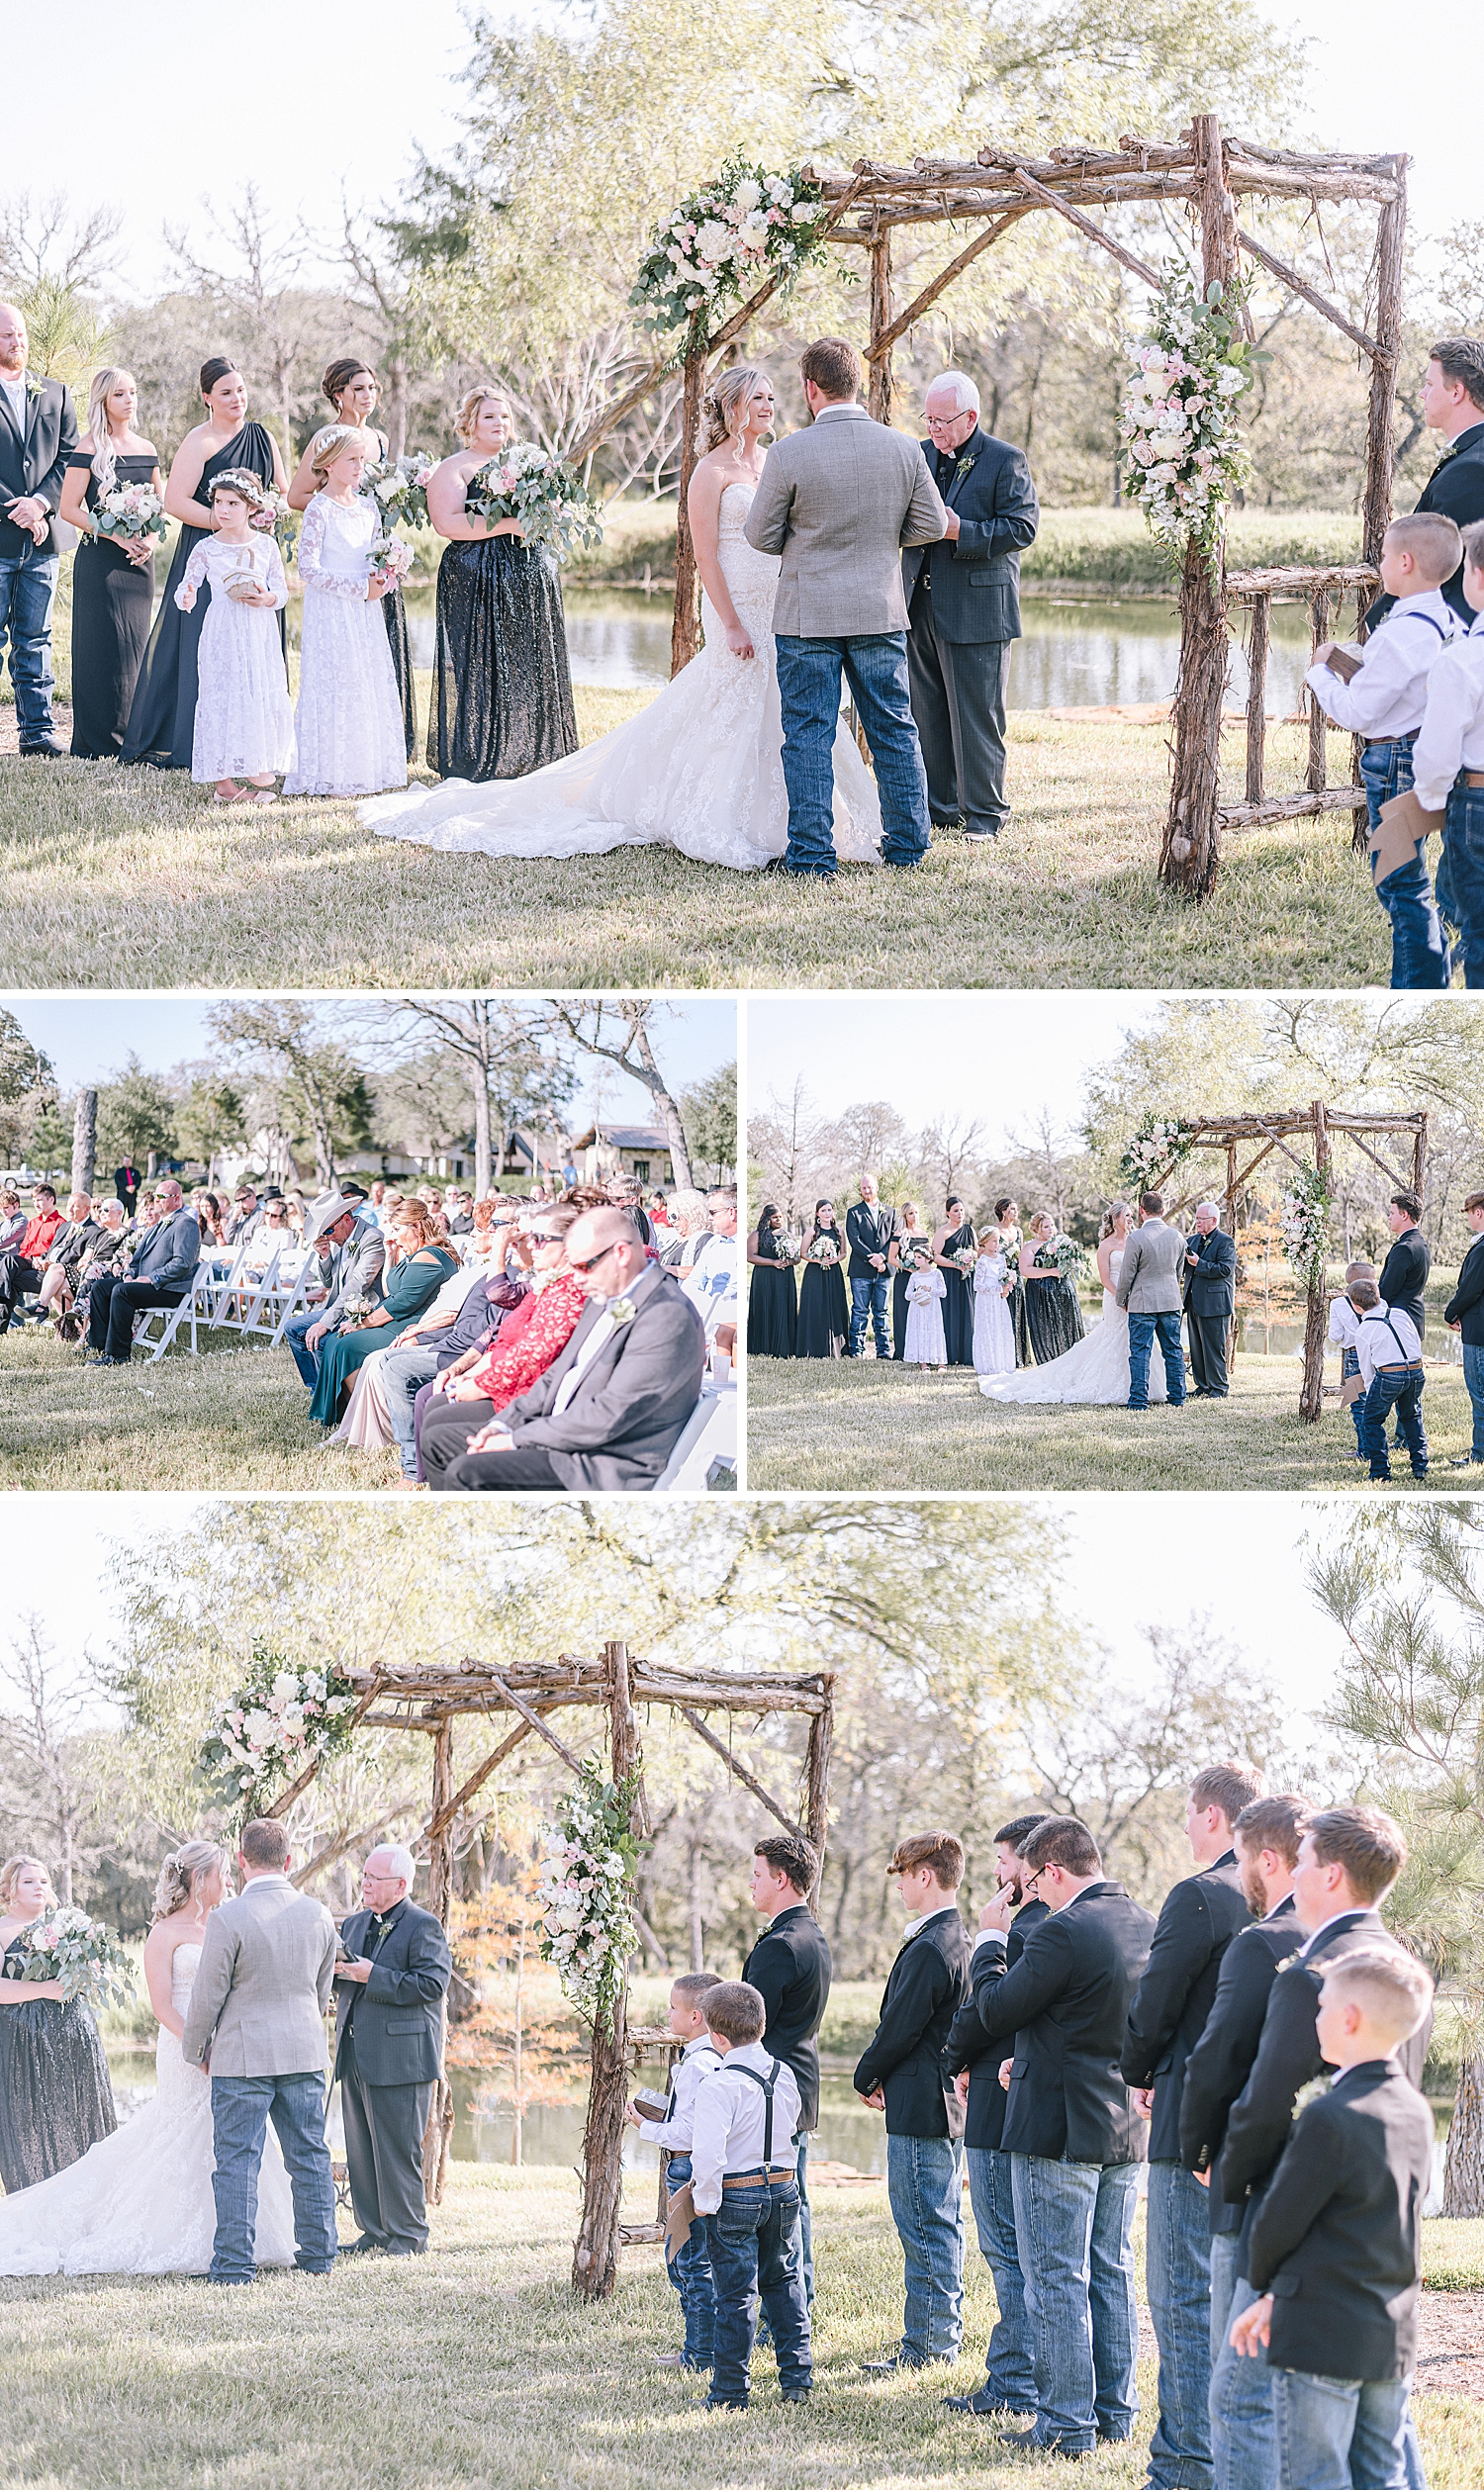 Rackler-Ranch-LaVernia-Texas-Wedding-Carly-Barton-Photography_0090.jpg